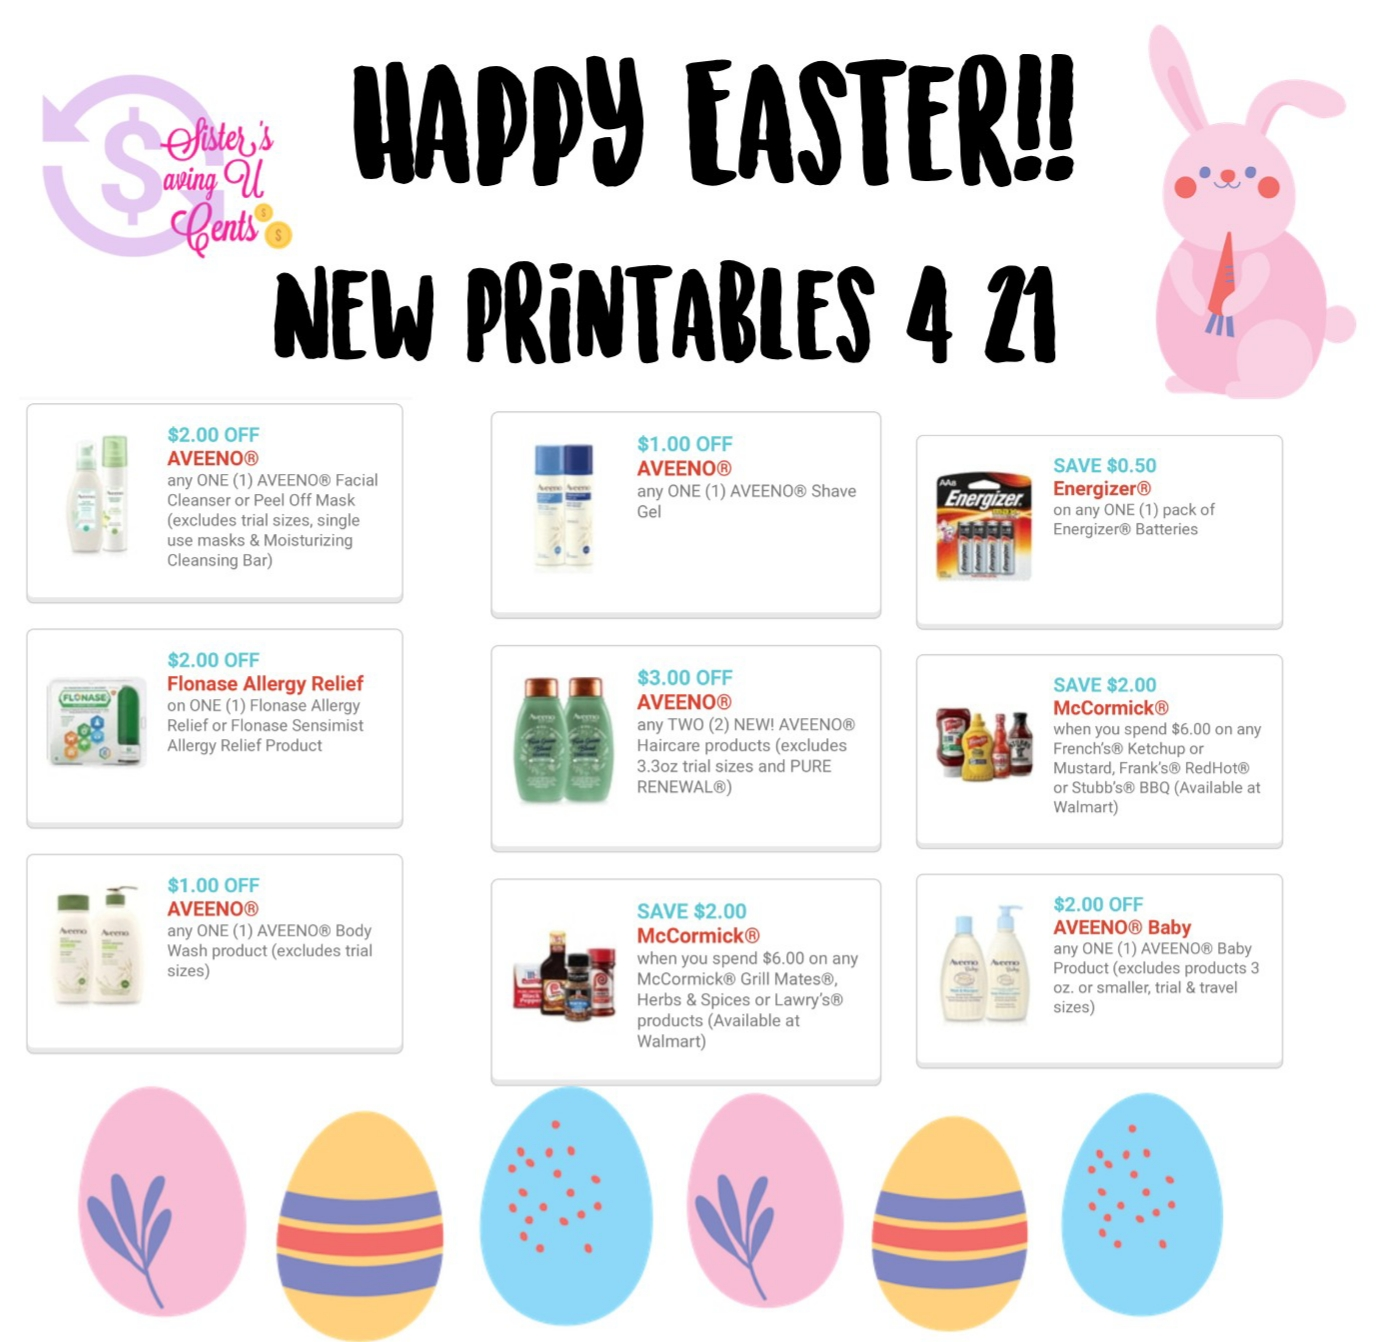 photo relating to Flonase Coupons Printable titled Pleased Easter Fresh Printable Discount codes 🐇!